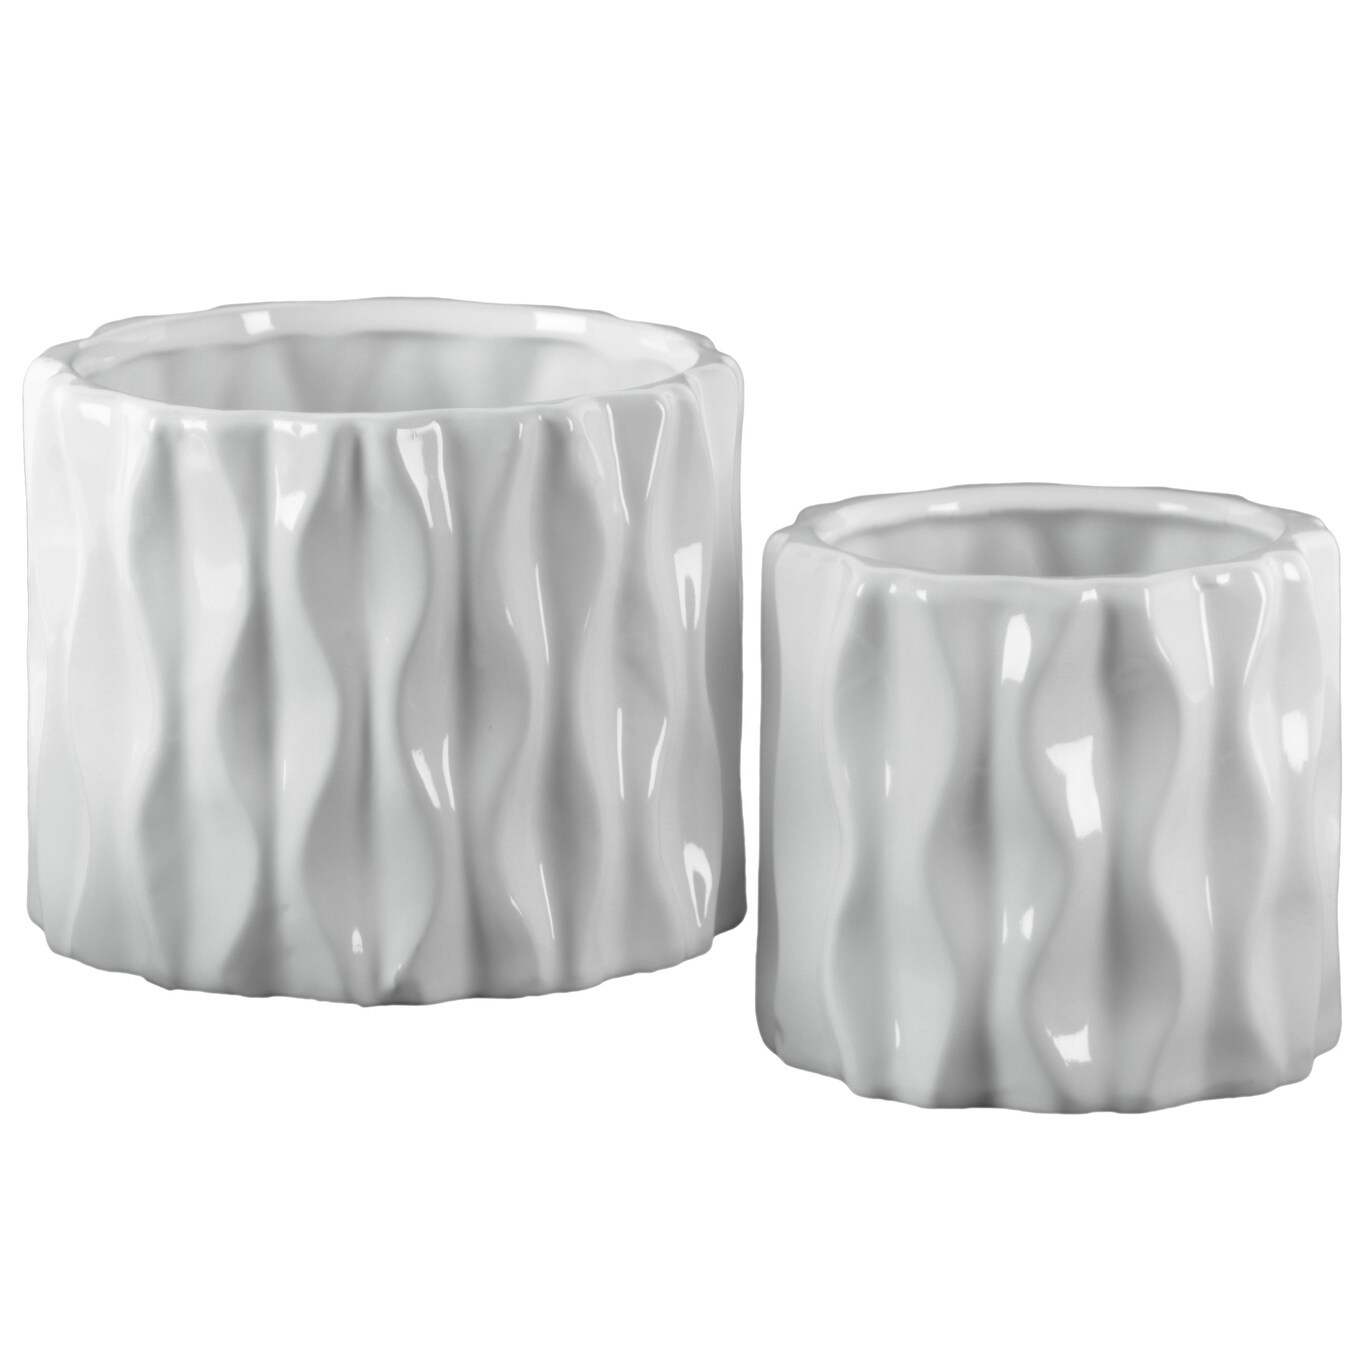 Urban Trends 42969 Ceramic Short Round Vase with Embossed Wave Design Body Gloss Finish White 2 Piece Set of 2